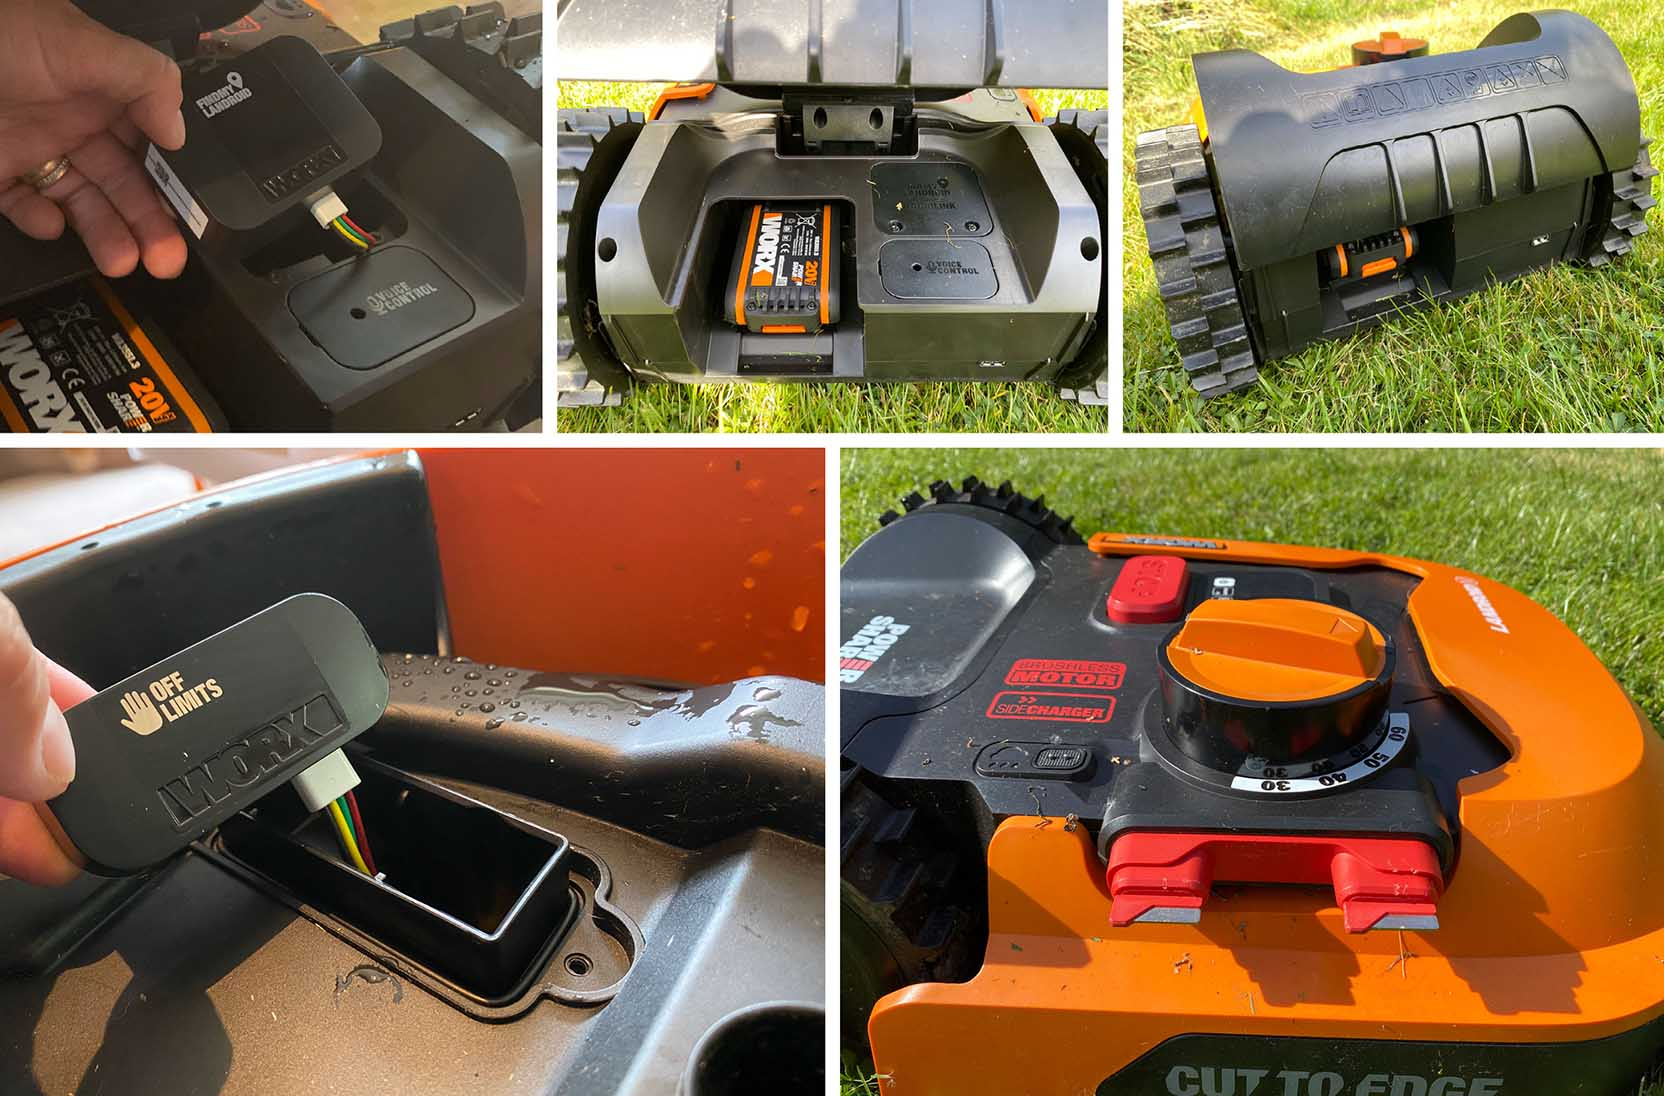 The Worx Landroid M500 is a robotic lawn mower that you can expand with additional functions